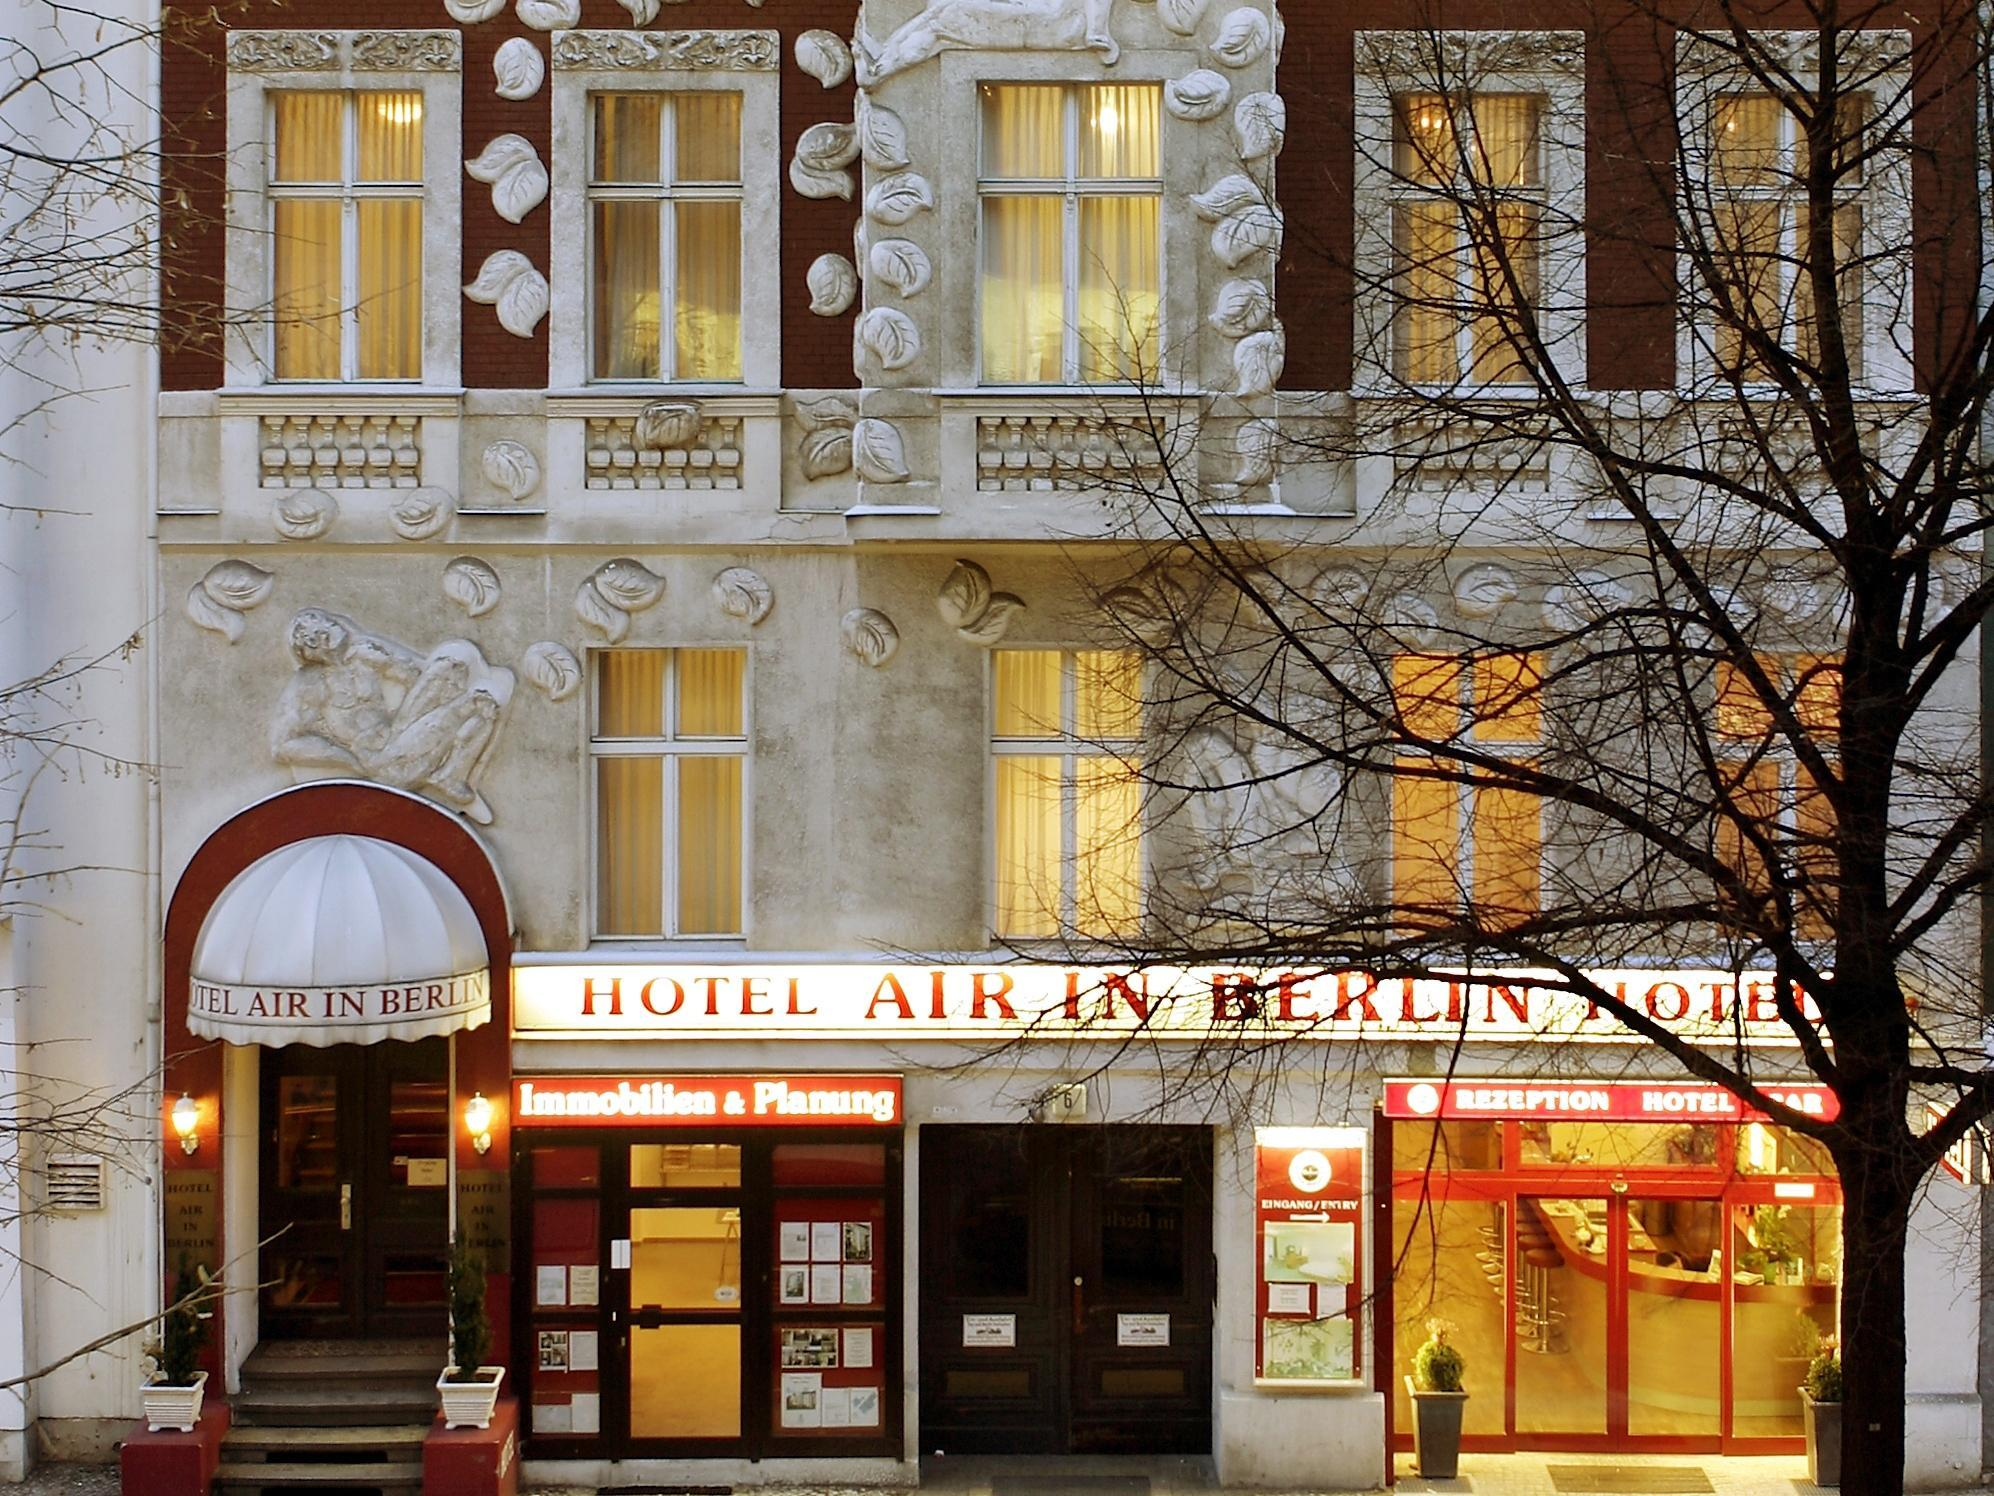 Hotel Air in Berlin 베를린